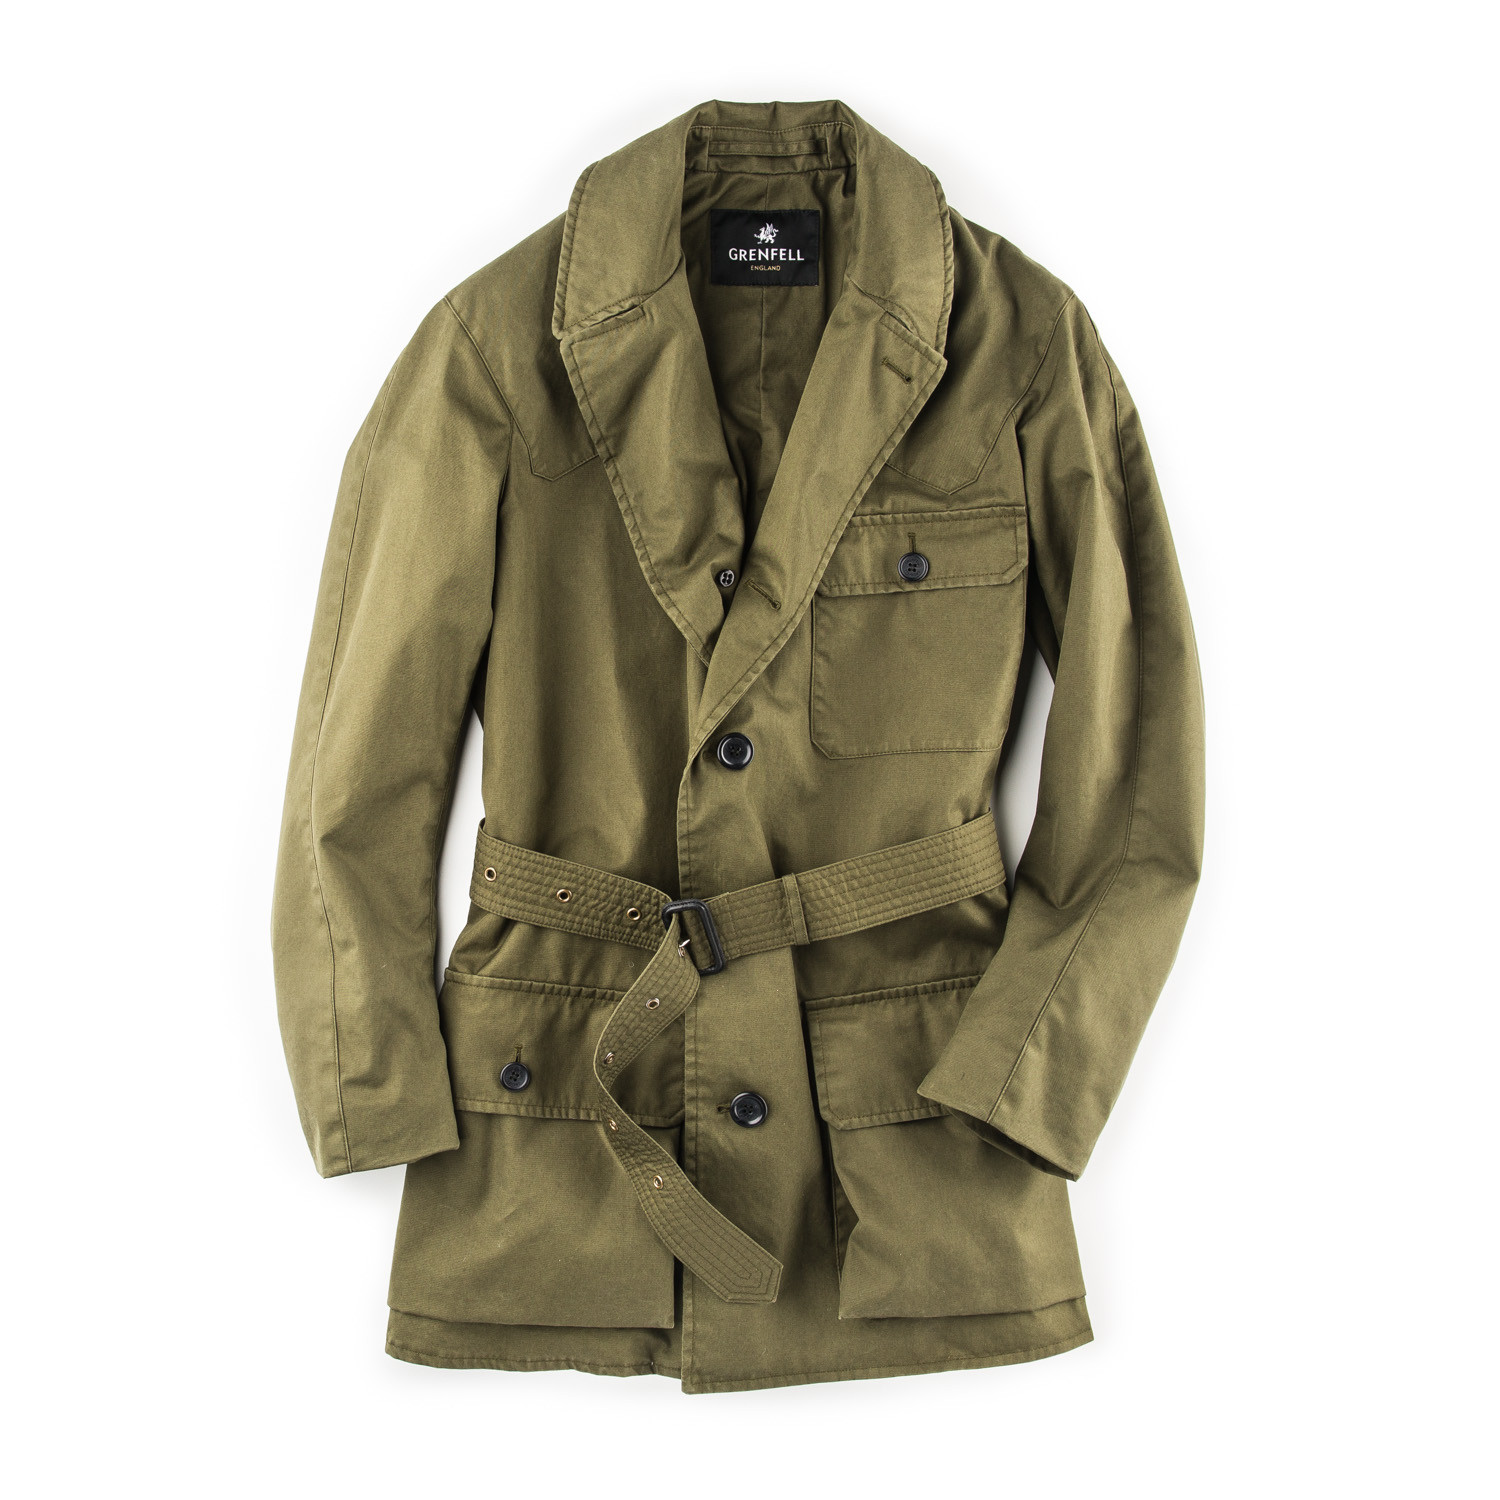 4ae93c994adc3 Grenfell - The Shooter Jacket - Green | W.R. & Co Ltd